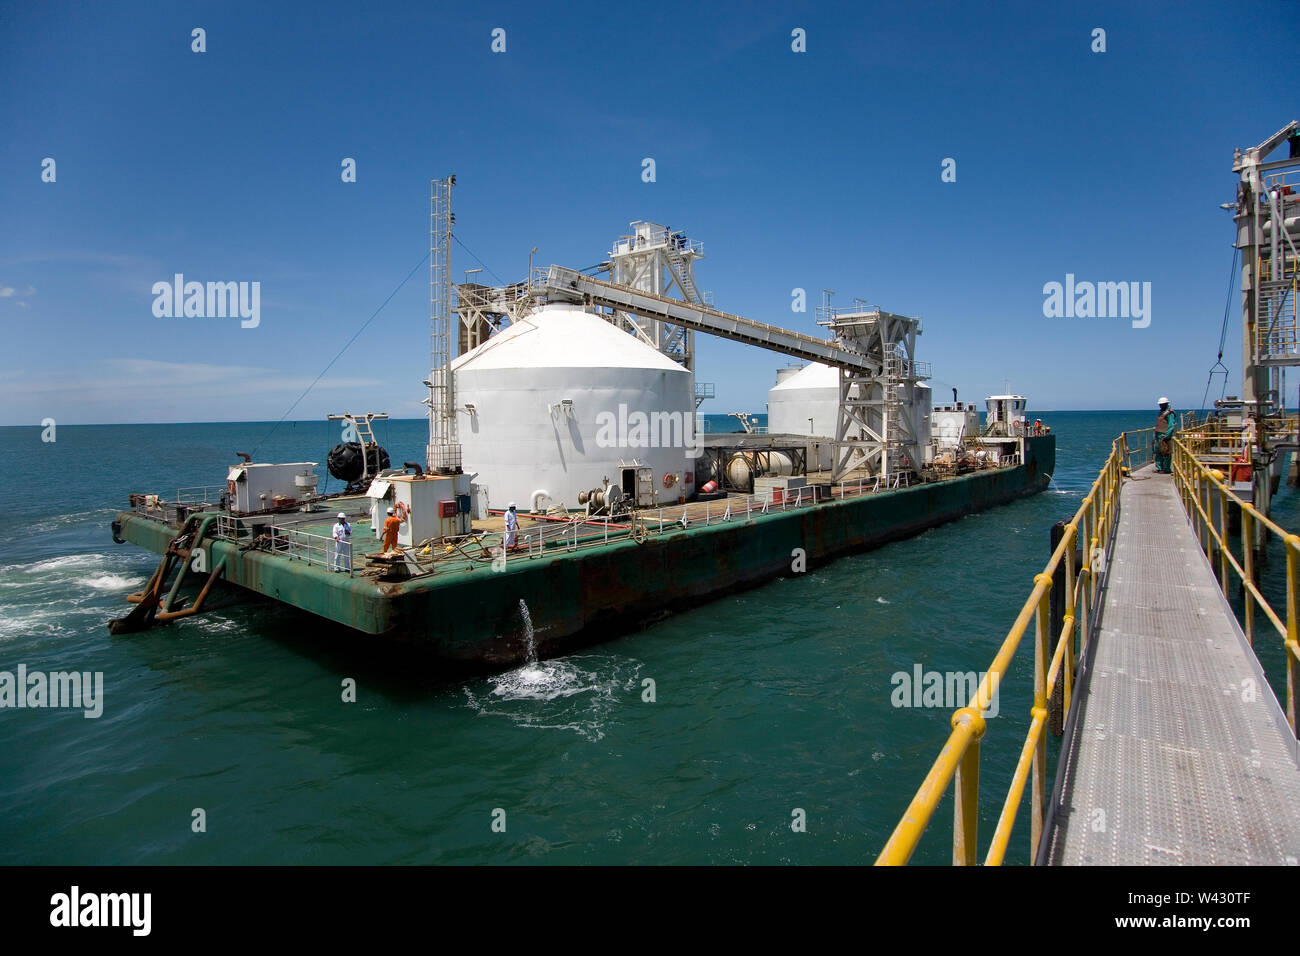 Mining, managing & transporting of titanium mineral sands. Custom built barge arriving at jetty to load up with mineral before transfer to OGV at sea. Stock Photo